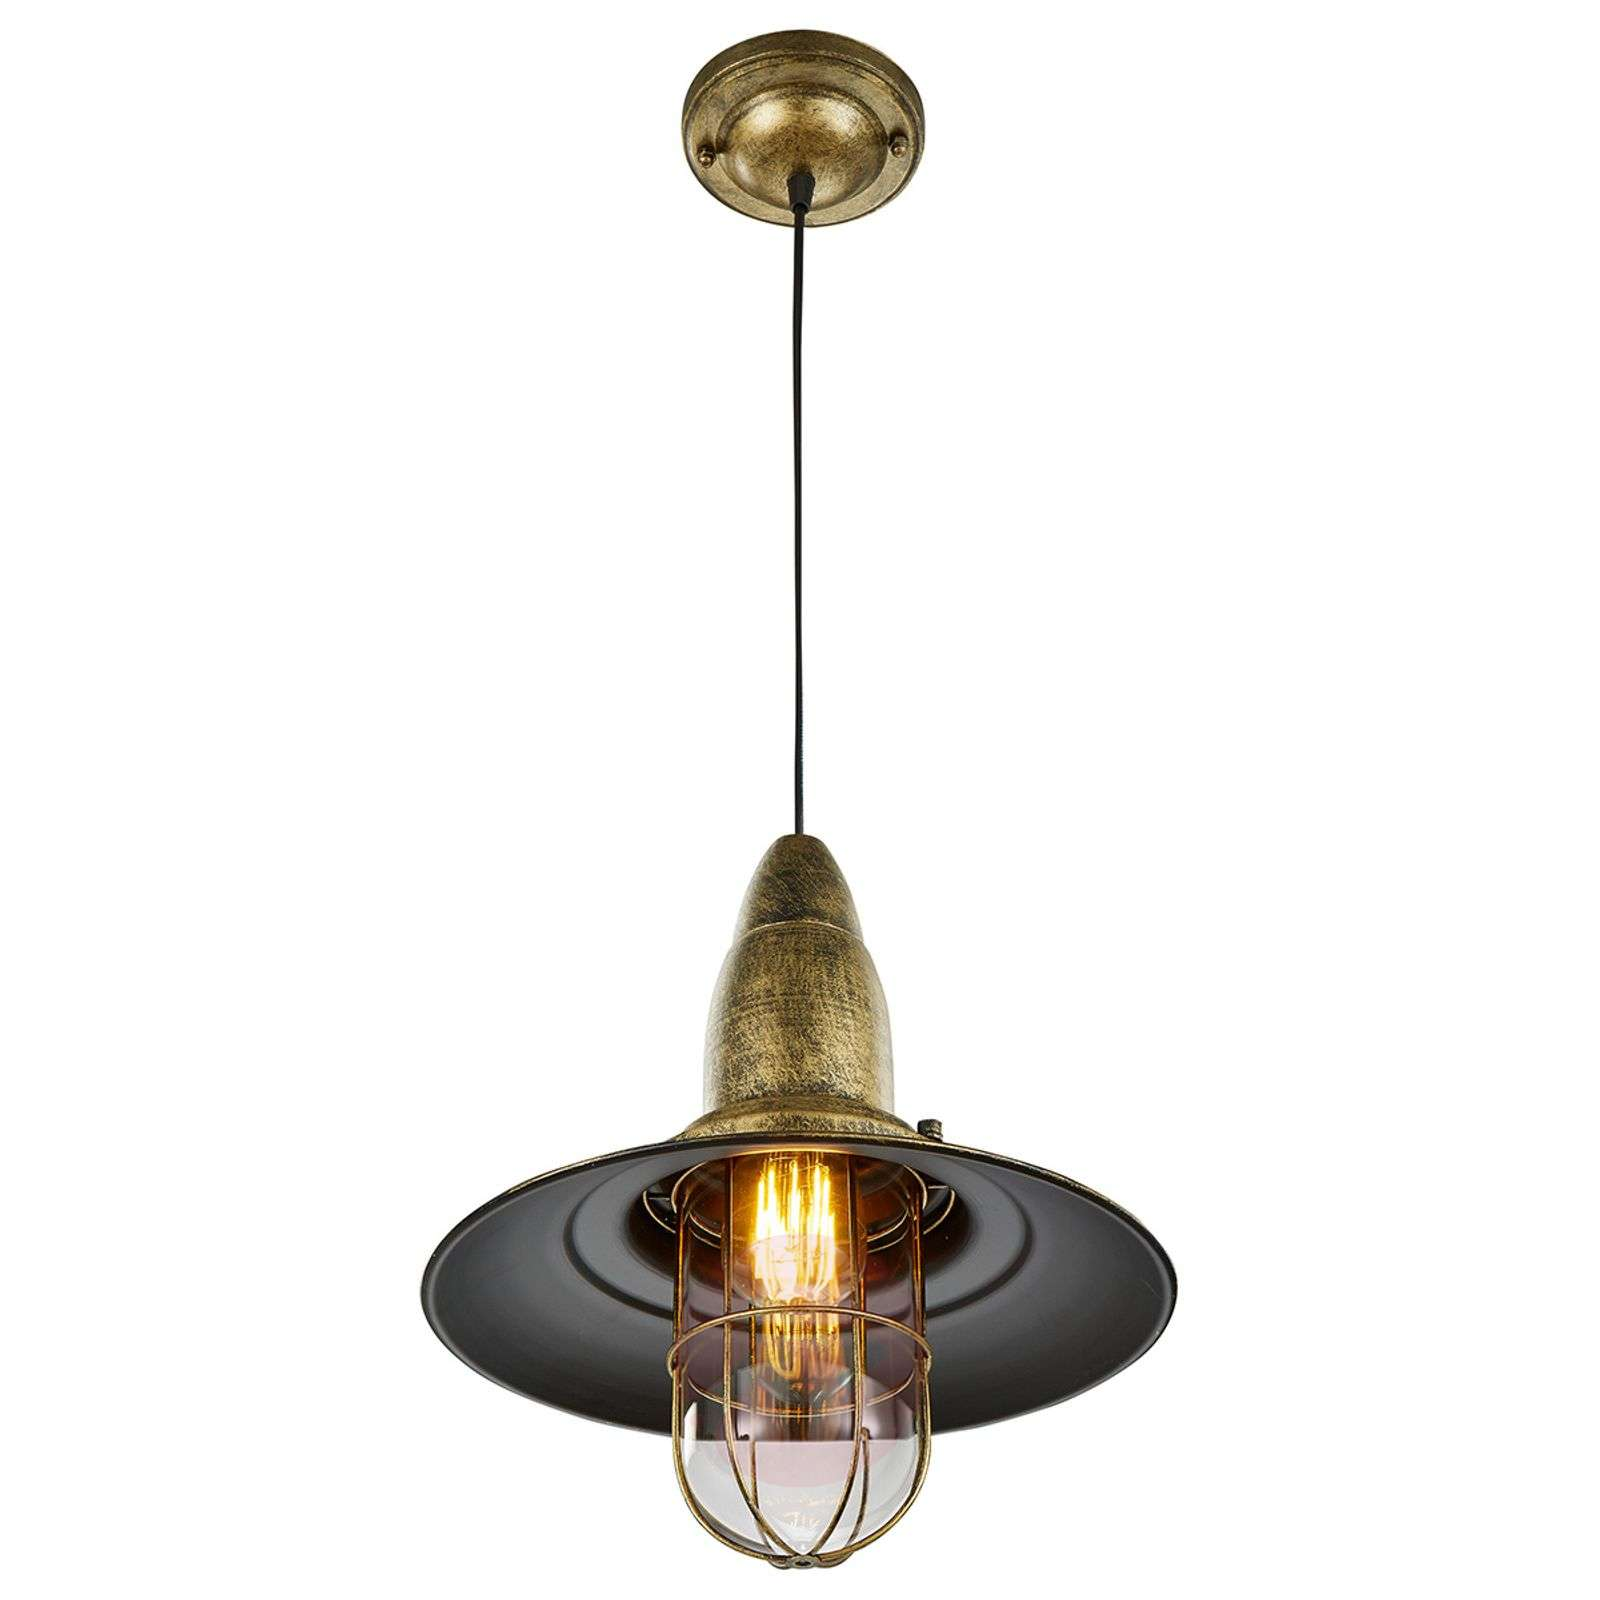 pewter brooklyn brass industville so inch lit pendant products lighting dome